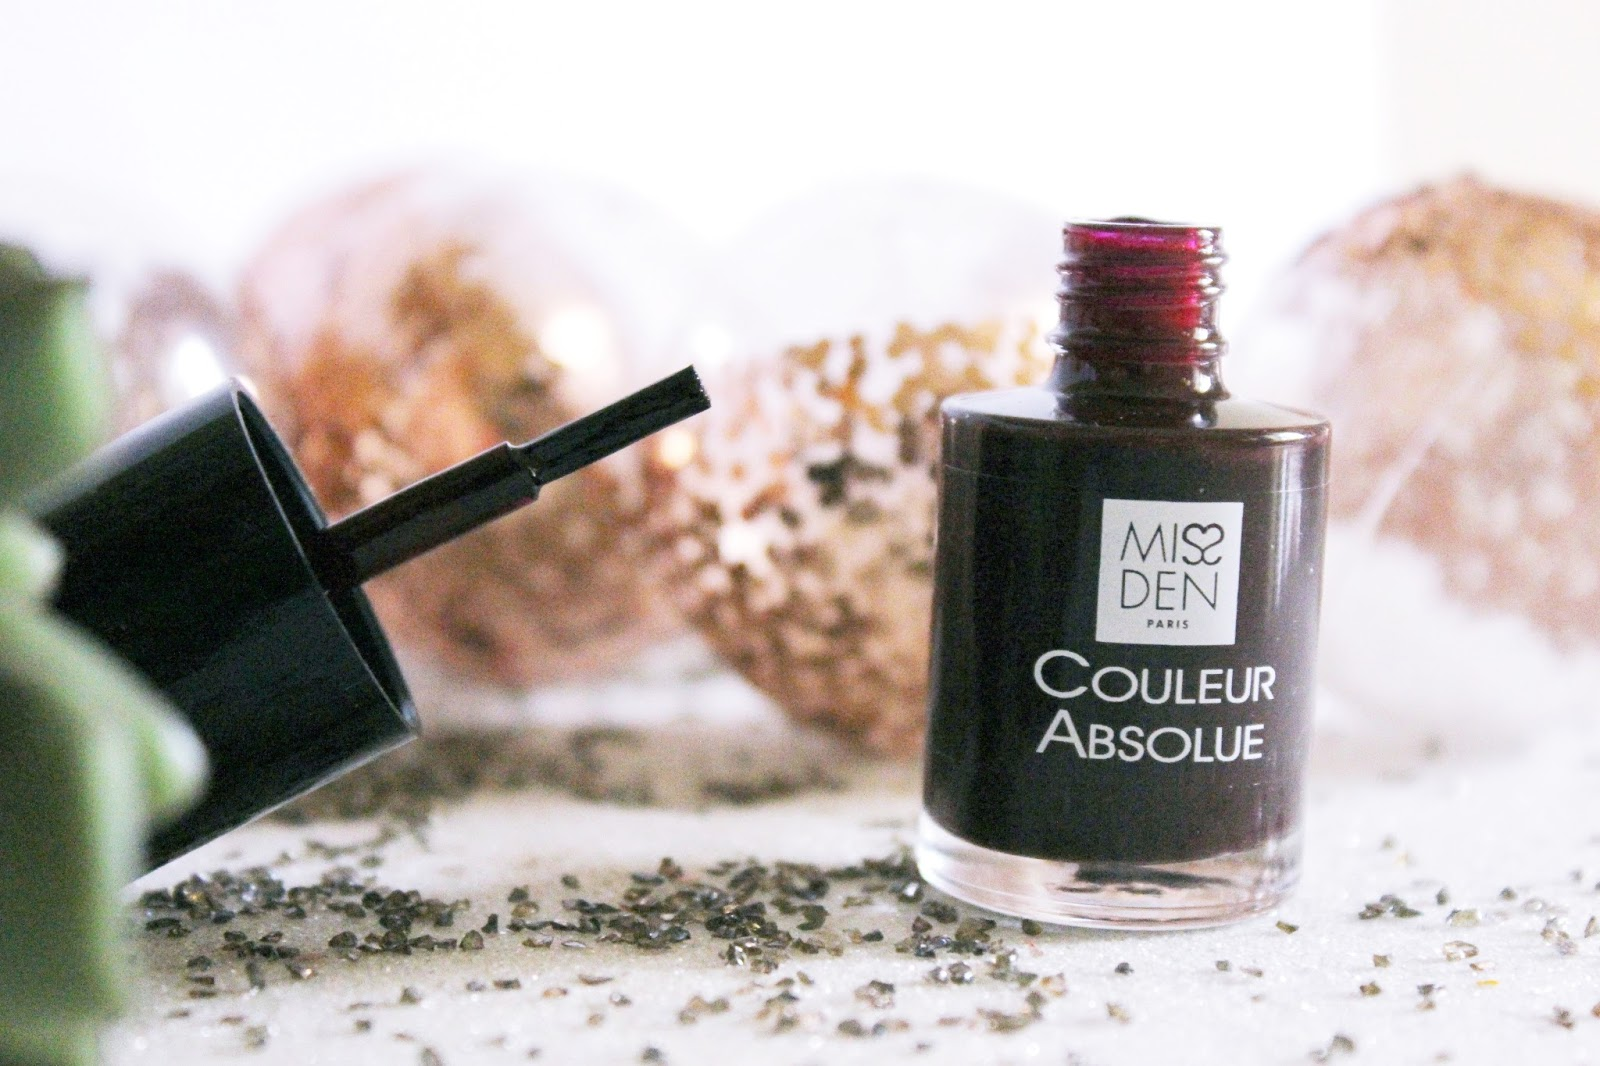 Miss Den 093 Couleur Absolue